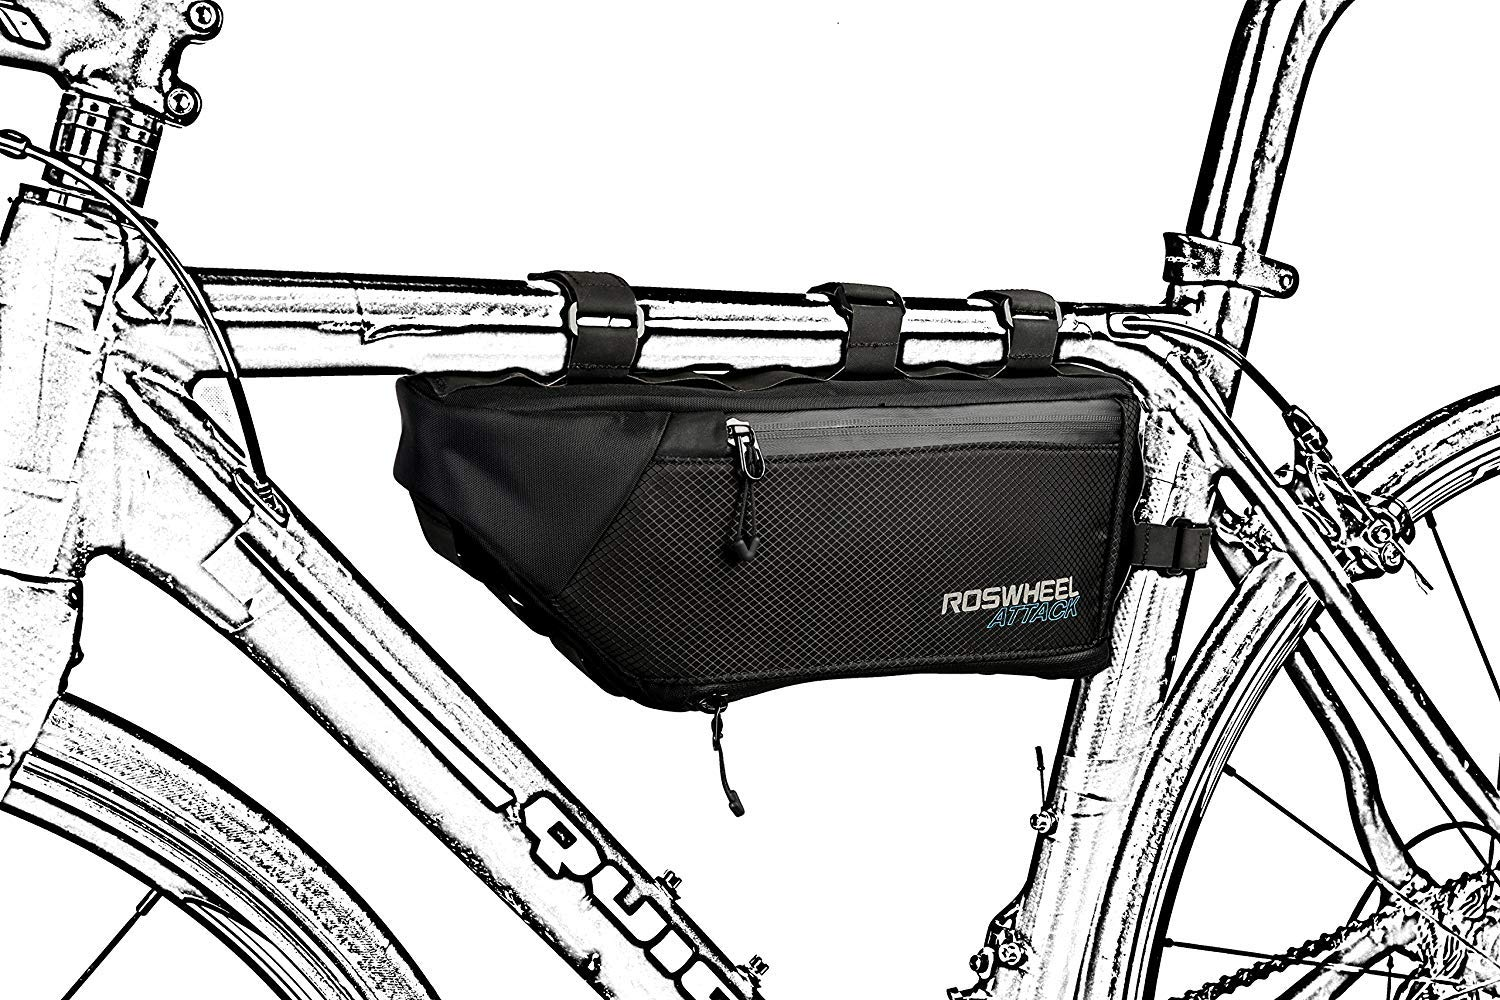 a02f7b70143 Roswheel Attack Series 121371 Waterproof Expandable Capacity Bike Frame  Triangle Bag for Bicycle Cycling Accessories: Amazon.ca: Sports & Outdoors